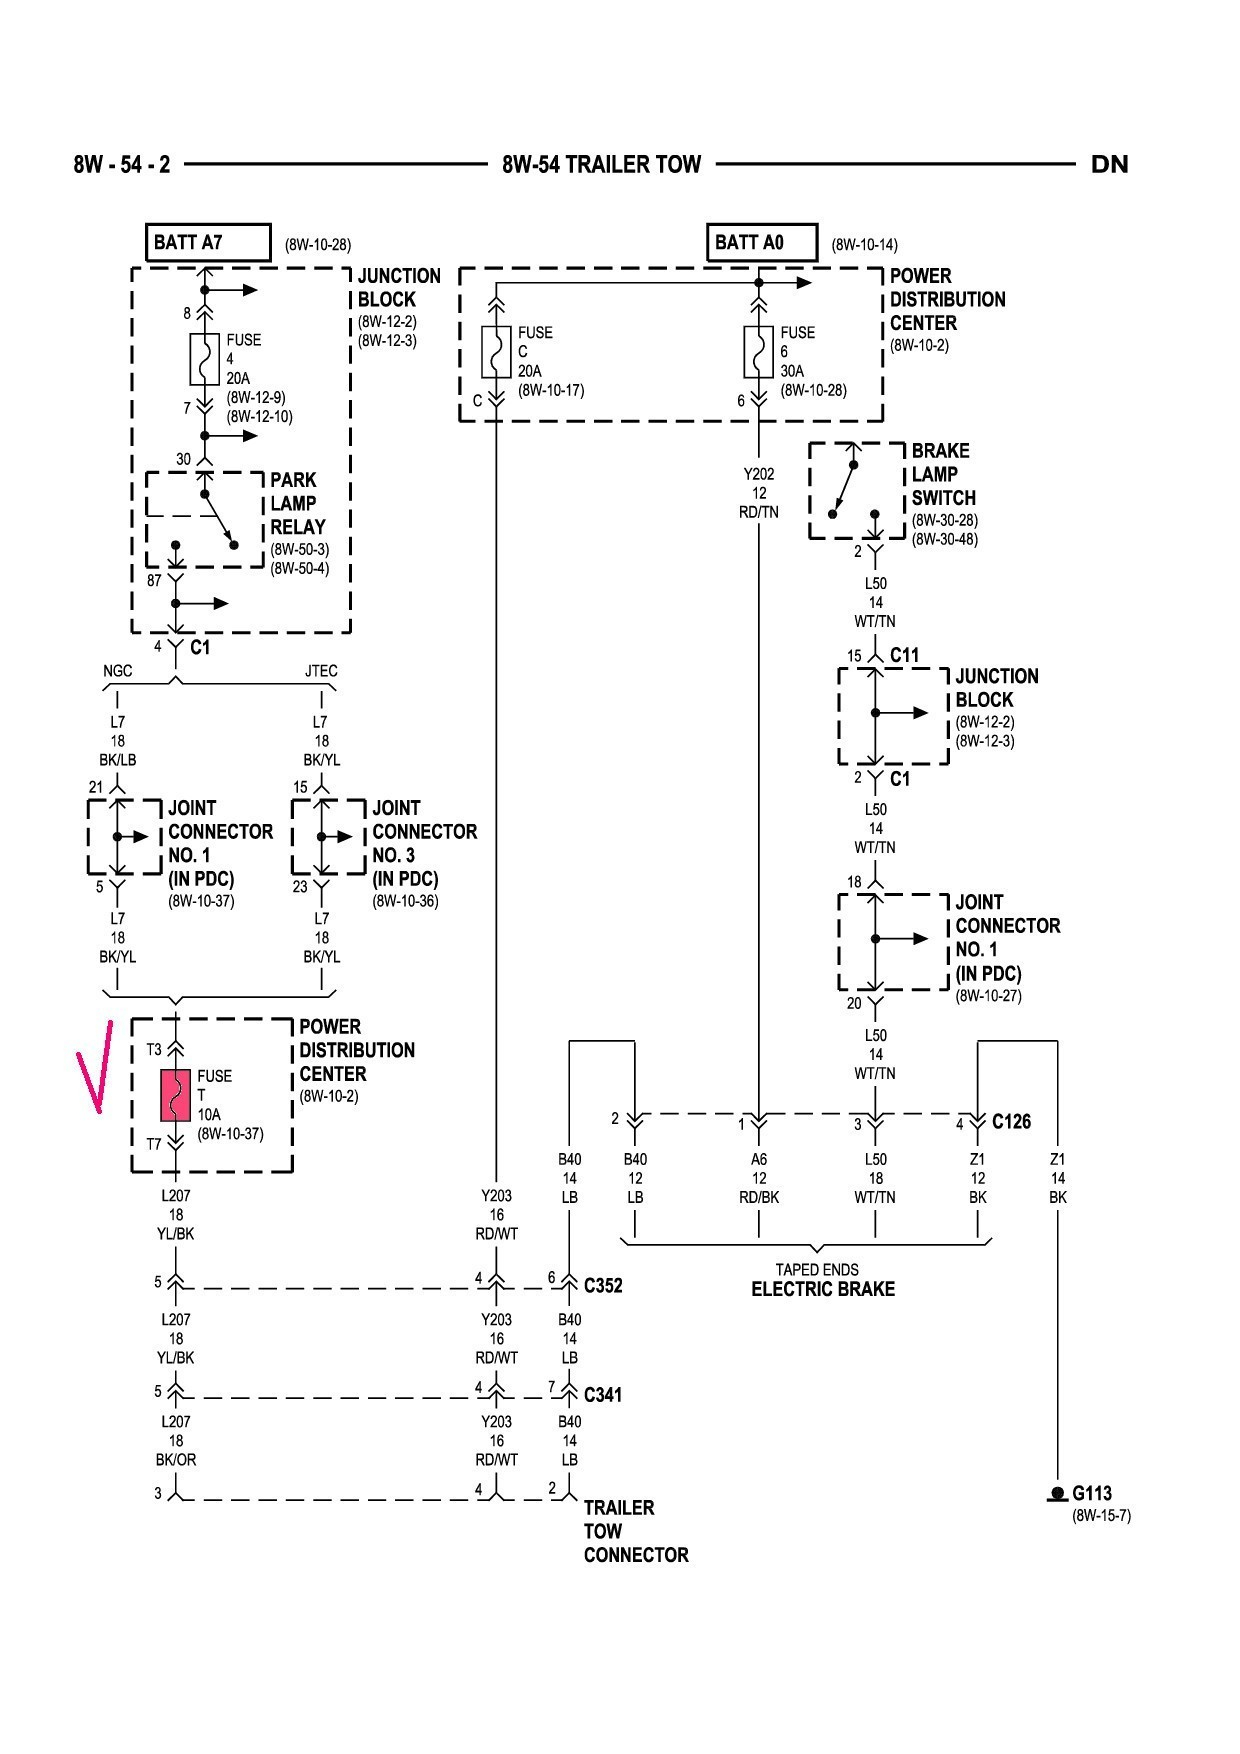 2001 dodge durango wiring schematics free download \u2022 oasis dl co